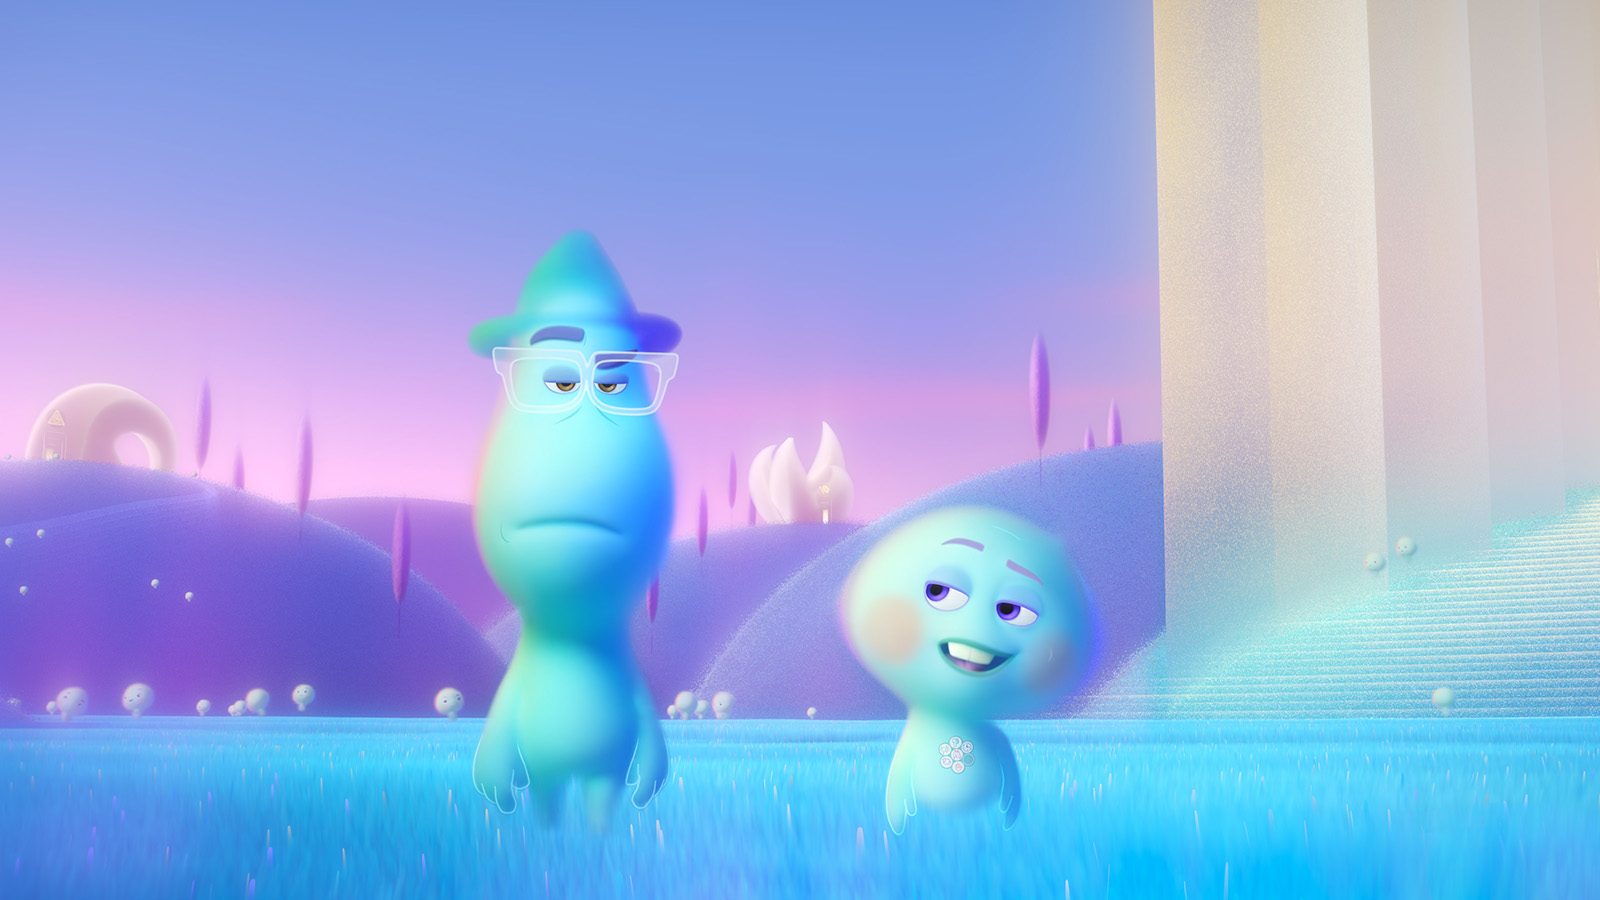 Soul Continues Success Of Disney Pixar Animation Universe - What to Watch in Theaters?